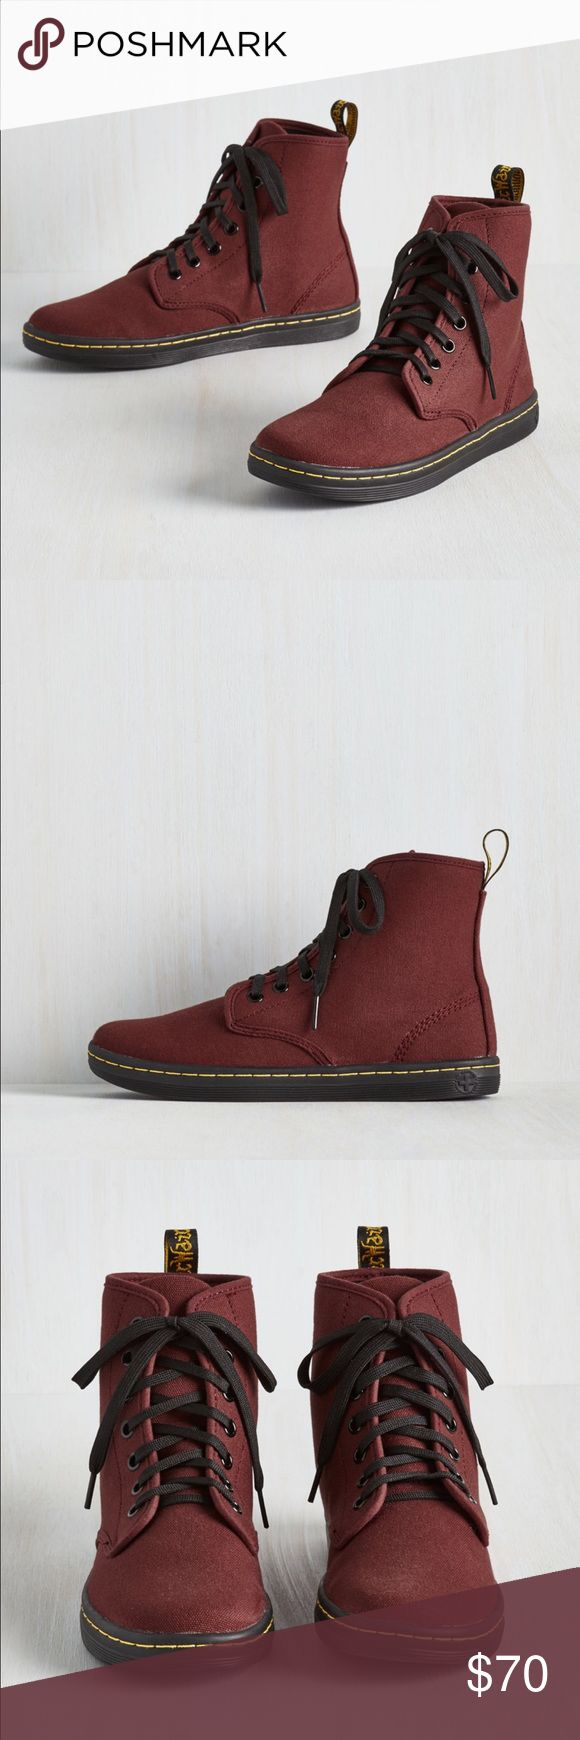 Dr. Martens Shoreditch Canvas Boots Cherry red high top canvas shoreditch eclectic boots from Dr. Martens. Seven-eye lace up style w/ black laces. Heel loop. Sole is stitched and cemented to the base of the upper and to the insole. Super comfy with Dr. Martens signature air-cushioned bouncy sole. I ordered these in a size too small unfortunately and missed my return window :( I tried them on but that was it. Never worn. Still in original box and packaging. Fit true to size. I am usually a…